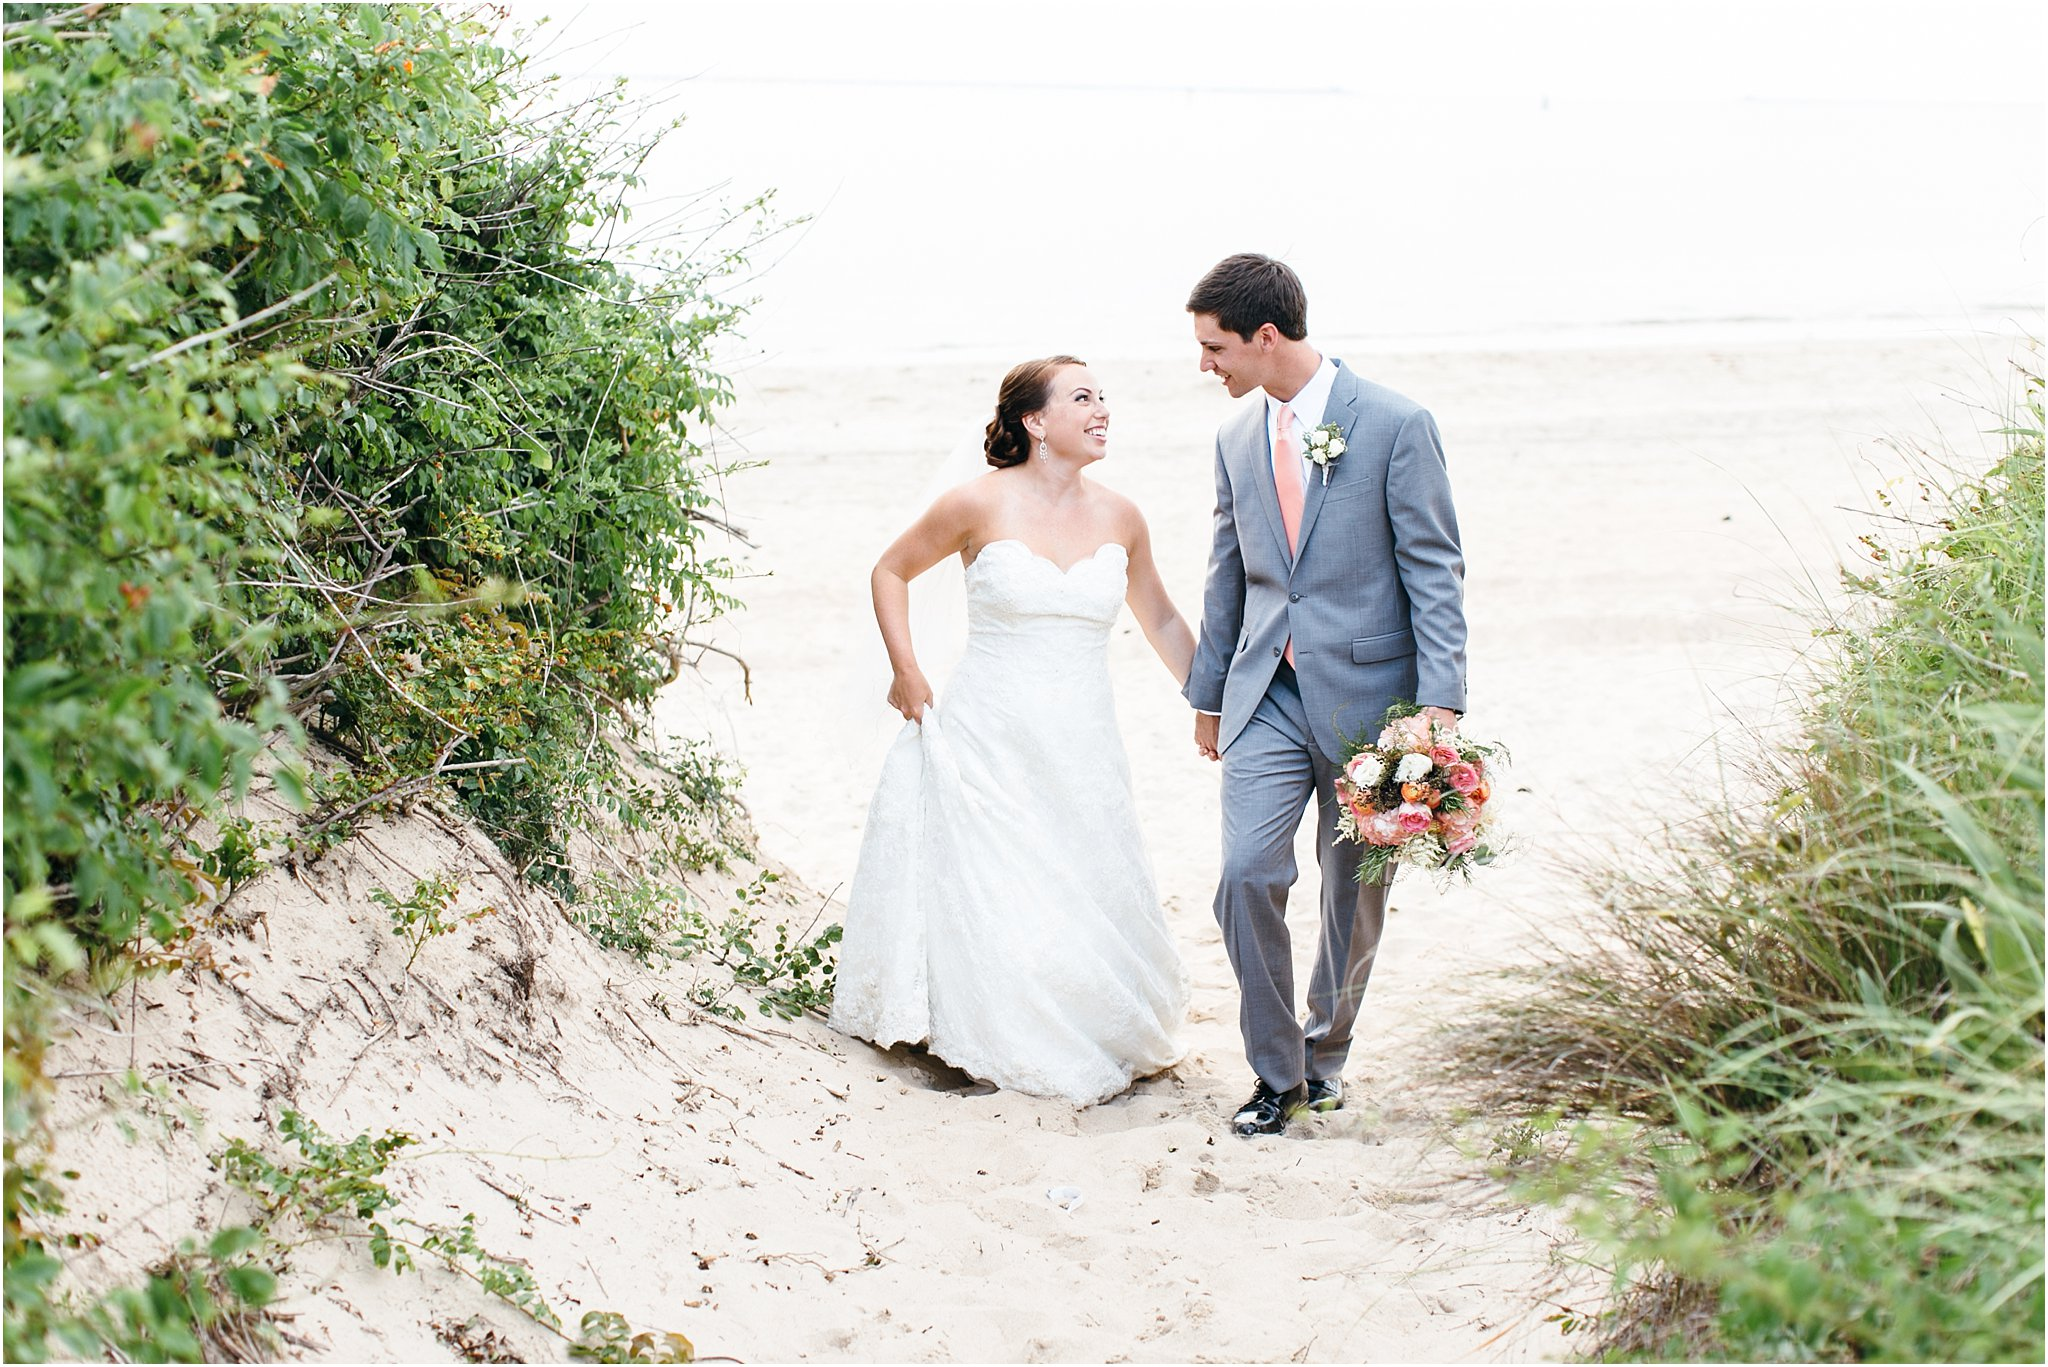 jessica_ryan_photography_wedding_photography_virginiabeach_virginia_candid_authentic_wedding_portraits_marina_shores_yacht_club_chesapeake_bay_1894